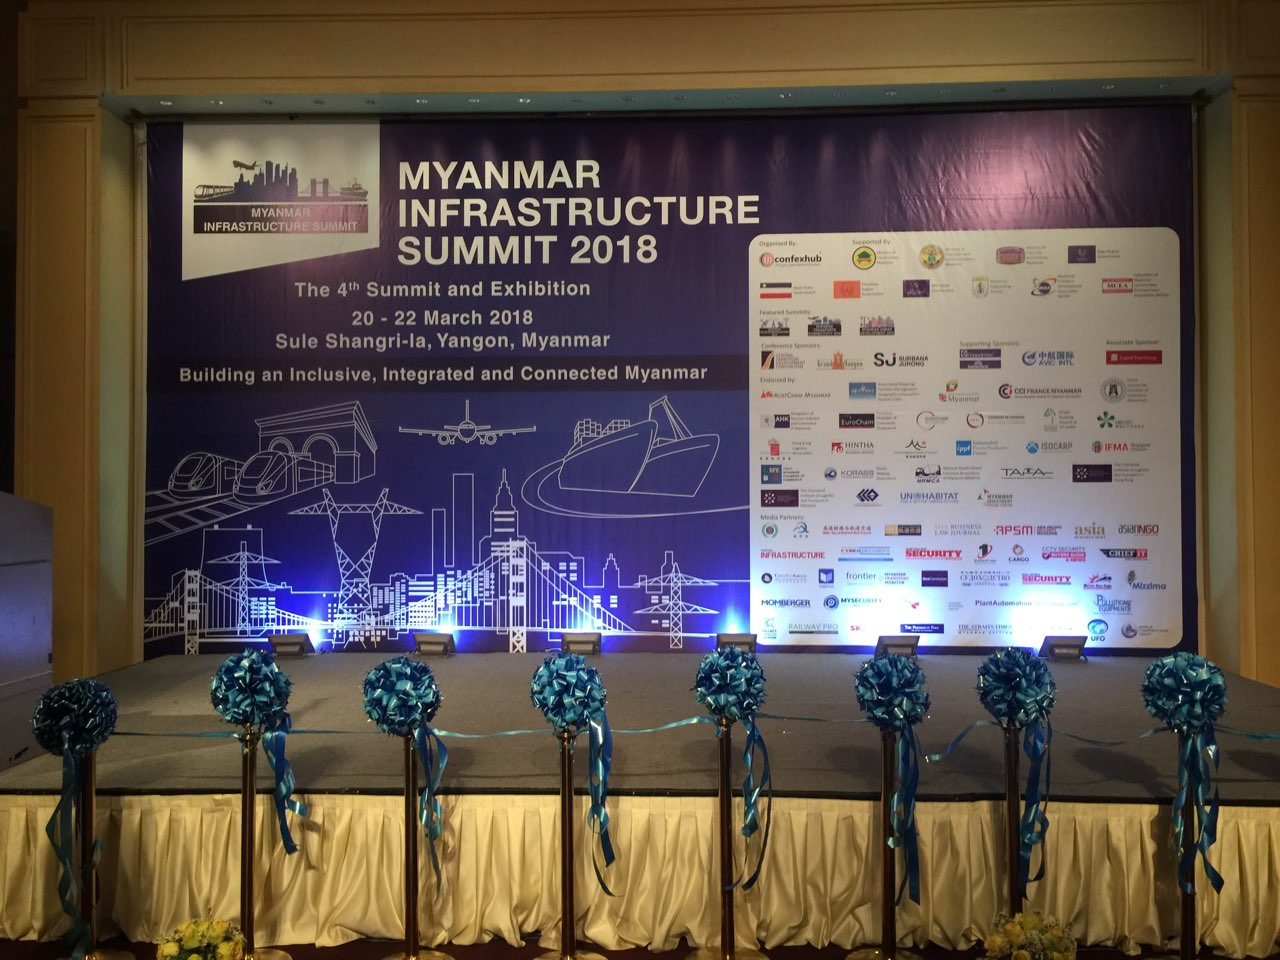 ATAD Myanmar joined Myanmar Infrastructure Summit 2018